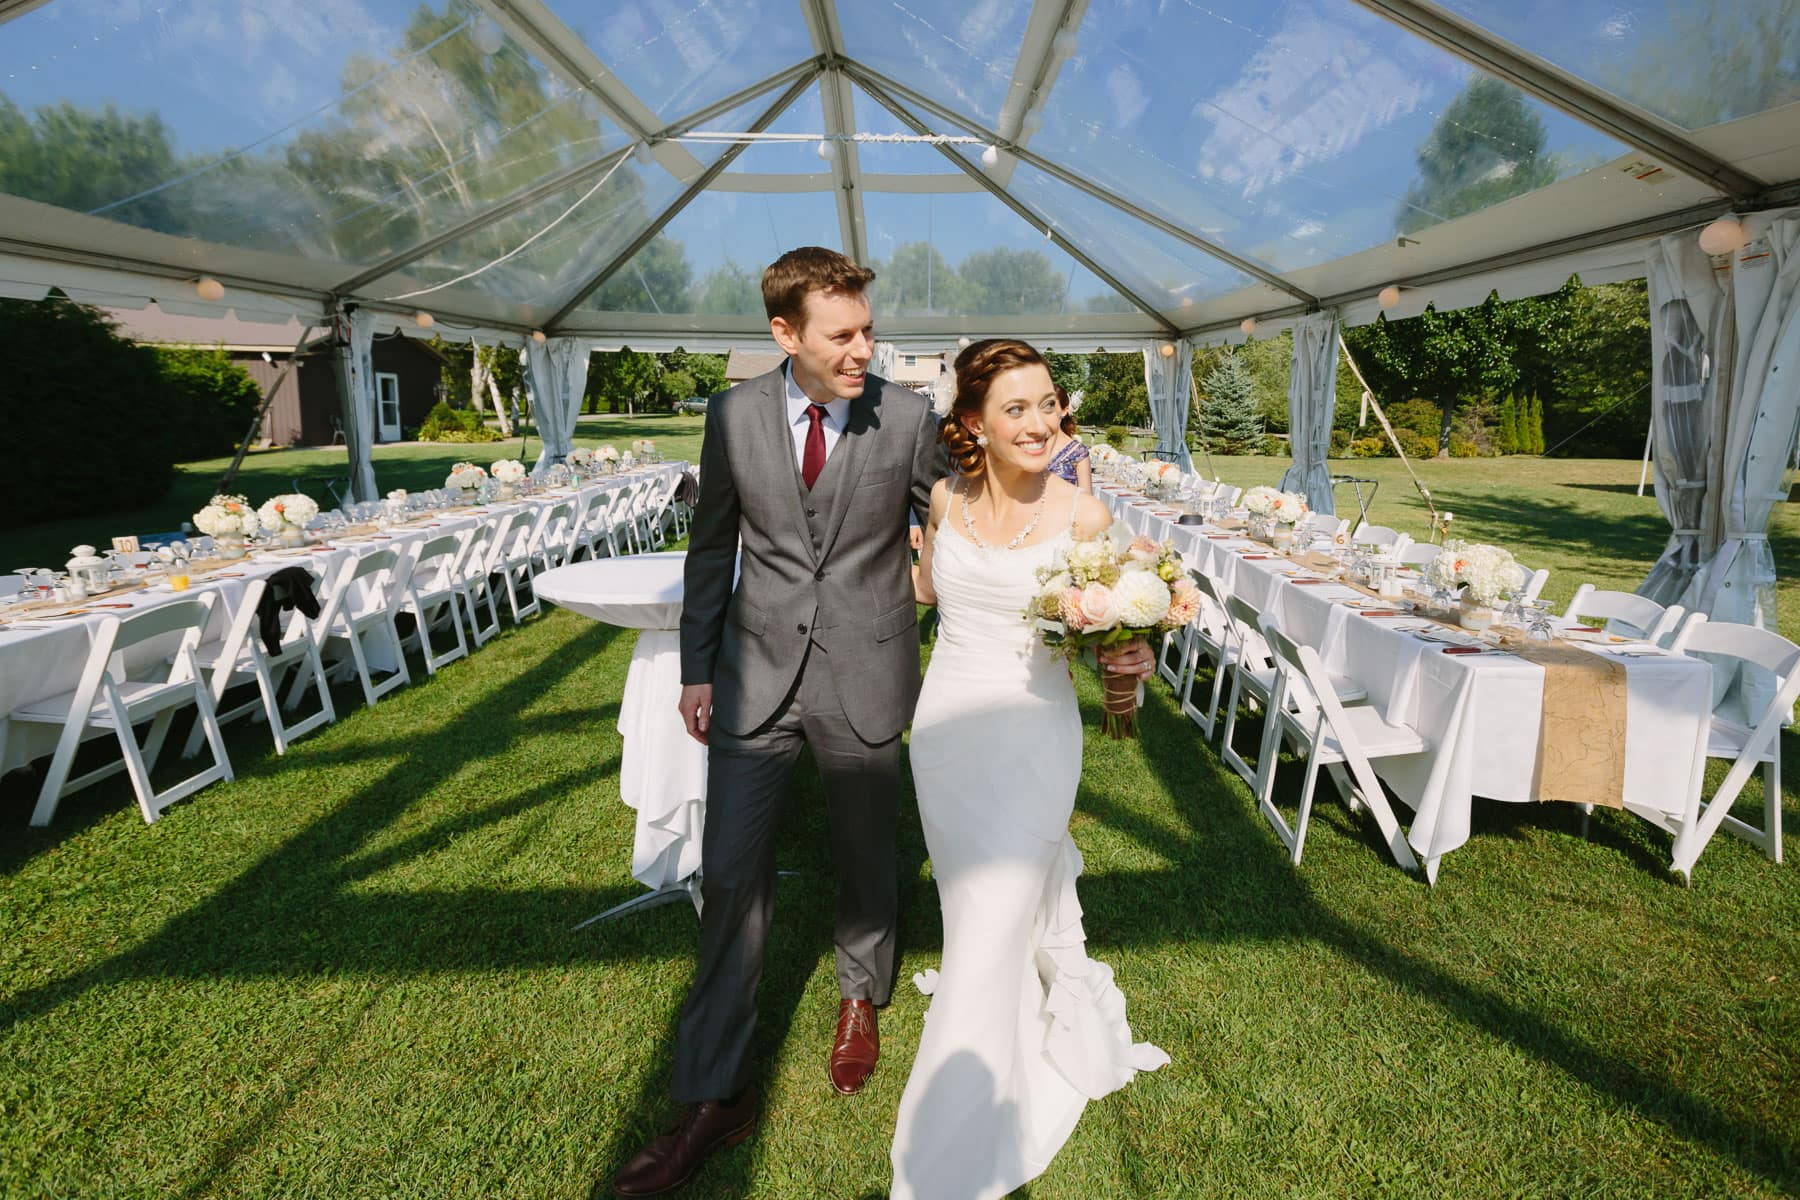 The bride and groom walk into the clear top white tent in these backyard wedding photos.